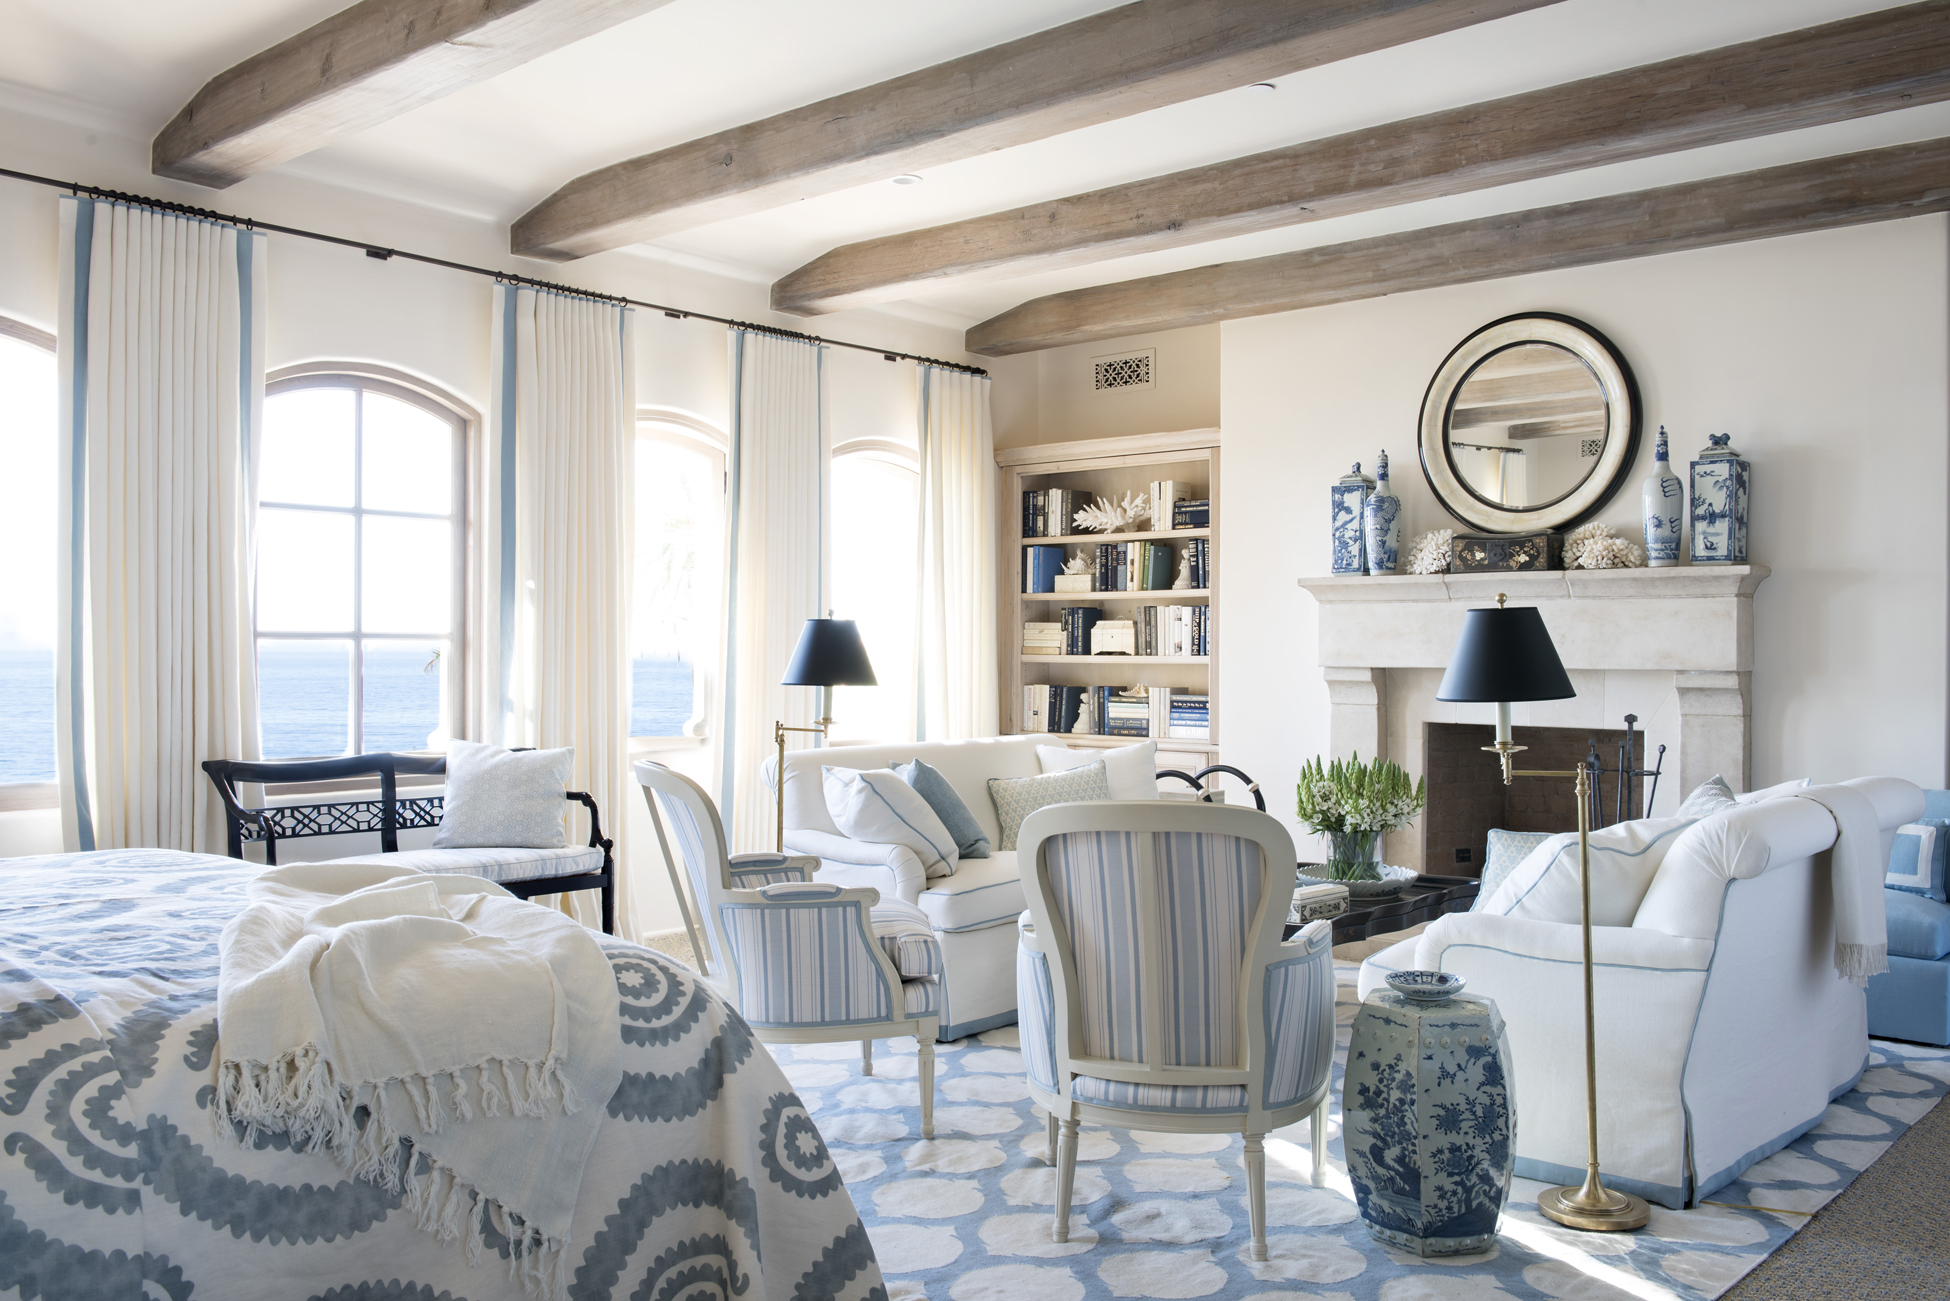 25 Best Blue Rooms Decorating Ideas For Walls And Home Decor